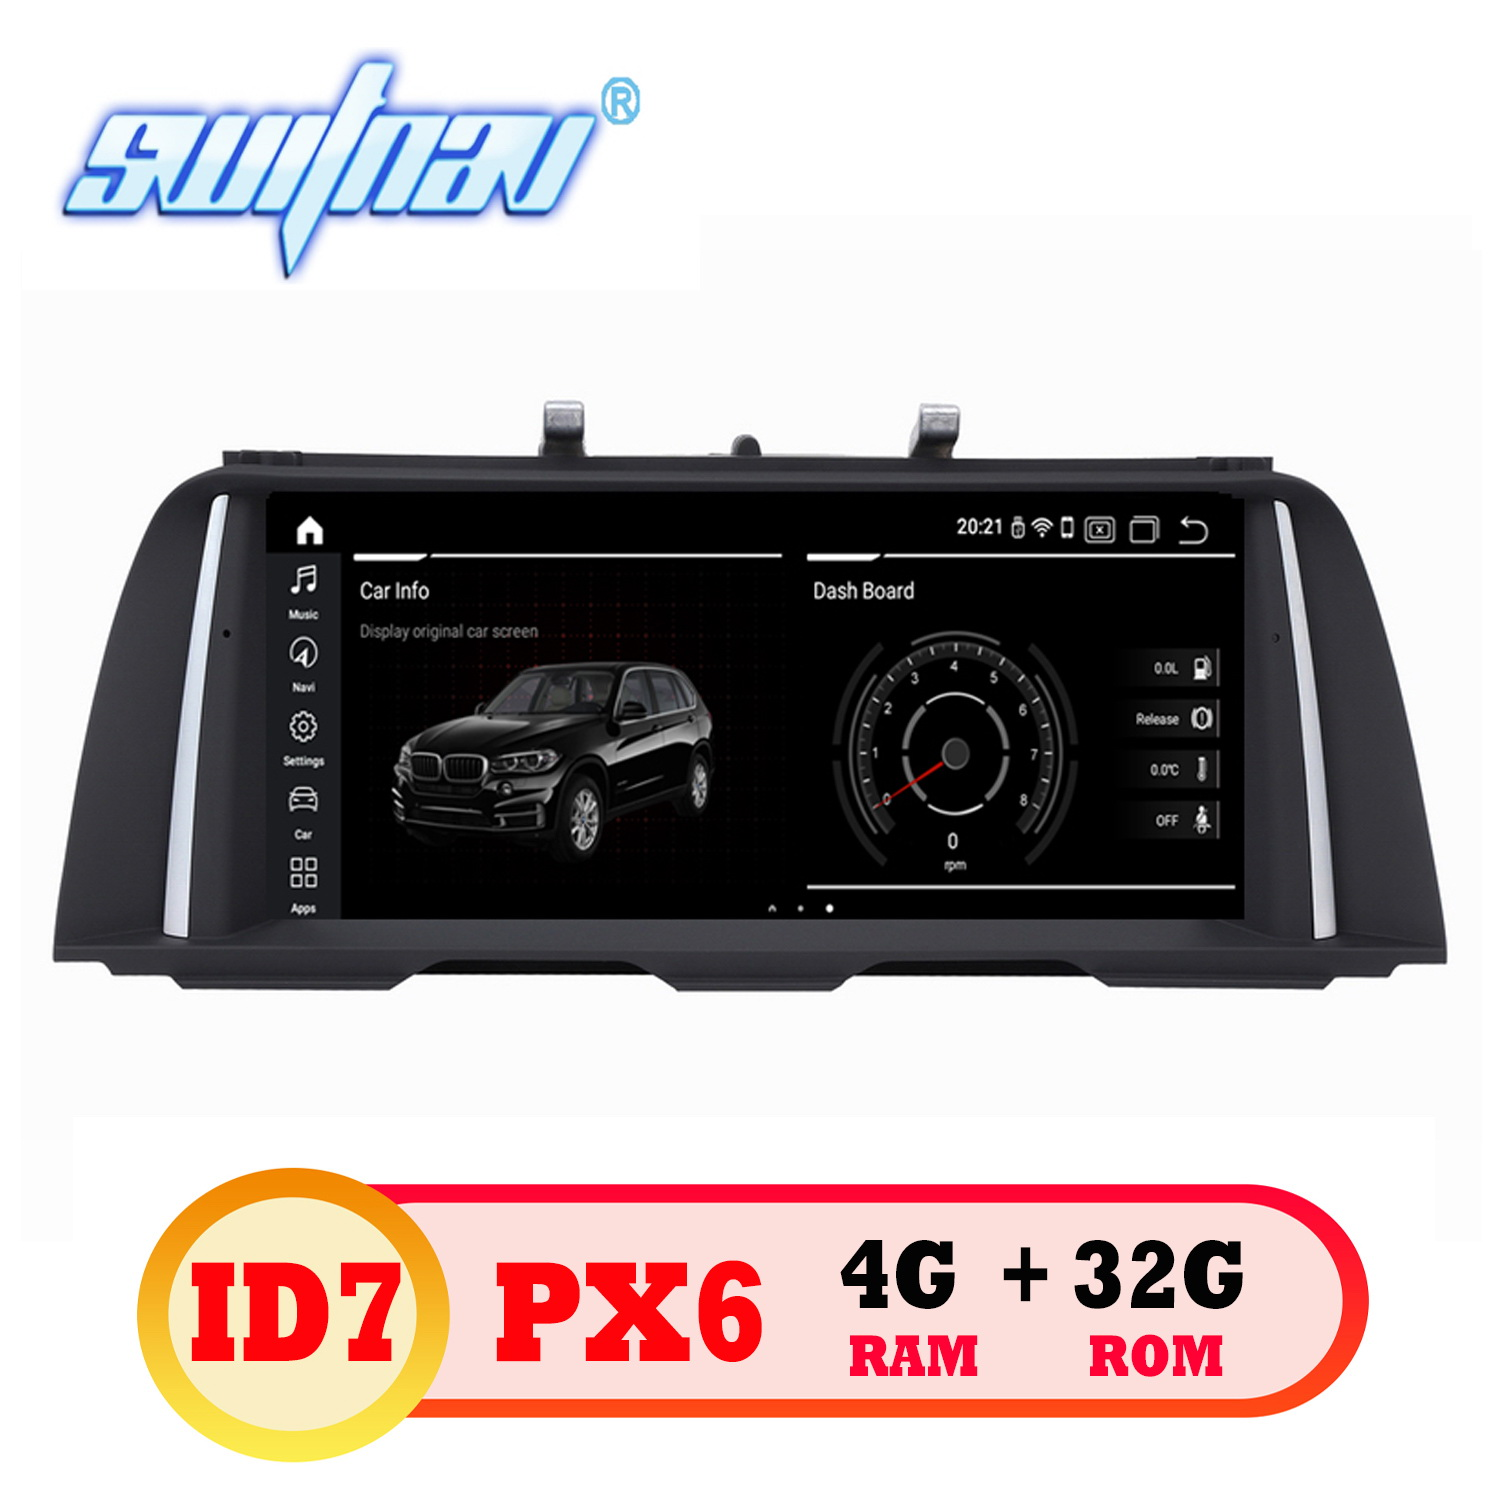 Android 9.0 6 core ID7 CAR DVD FOR BMW 5 Series F10/F11 Original CIC/NBT System stereo GPS monitor multimedia in one ips screen-in Car Multimedia Player from Automobiles & Motorcycles    1